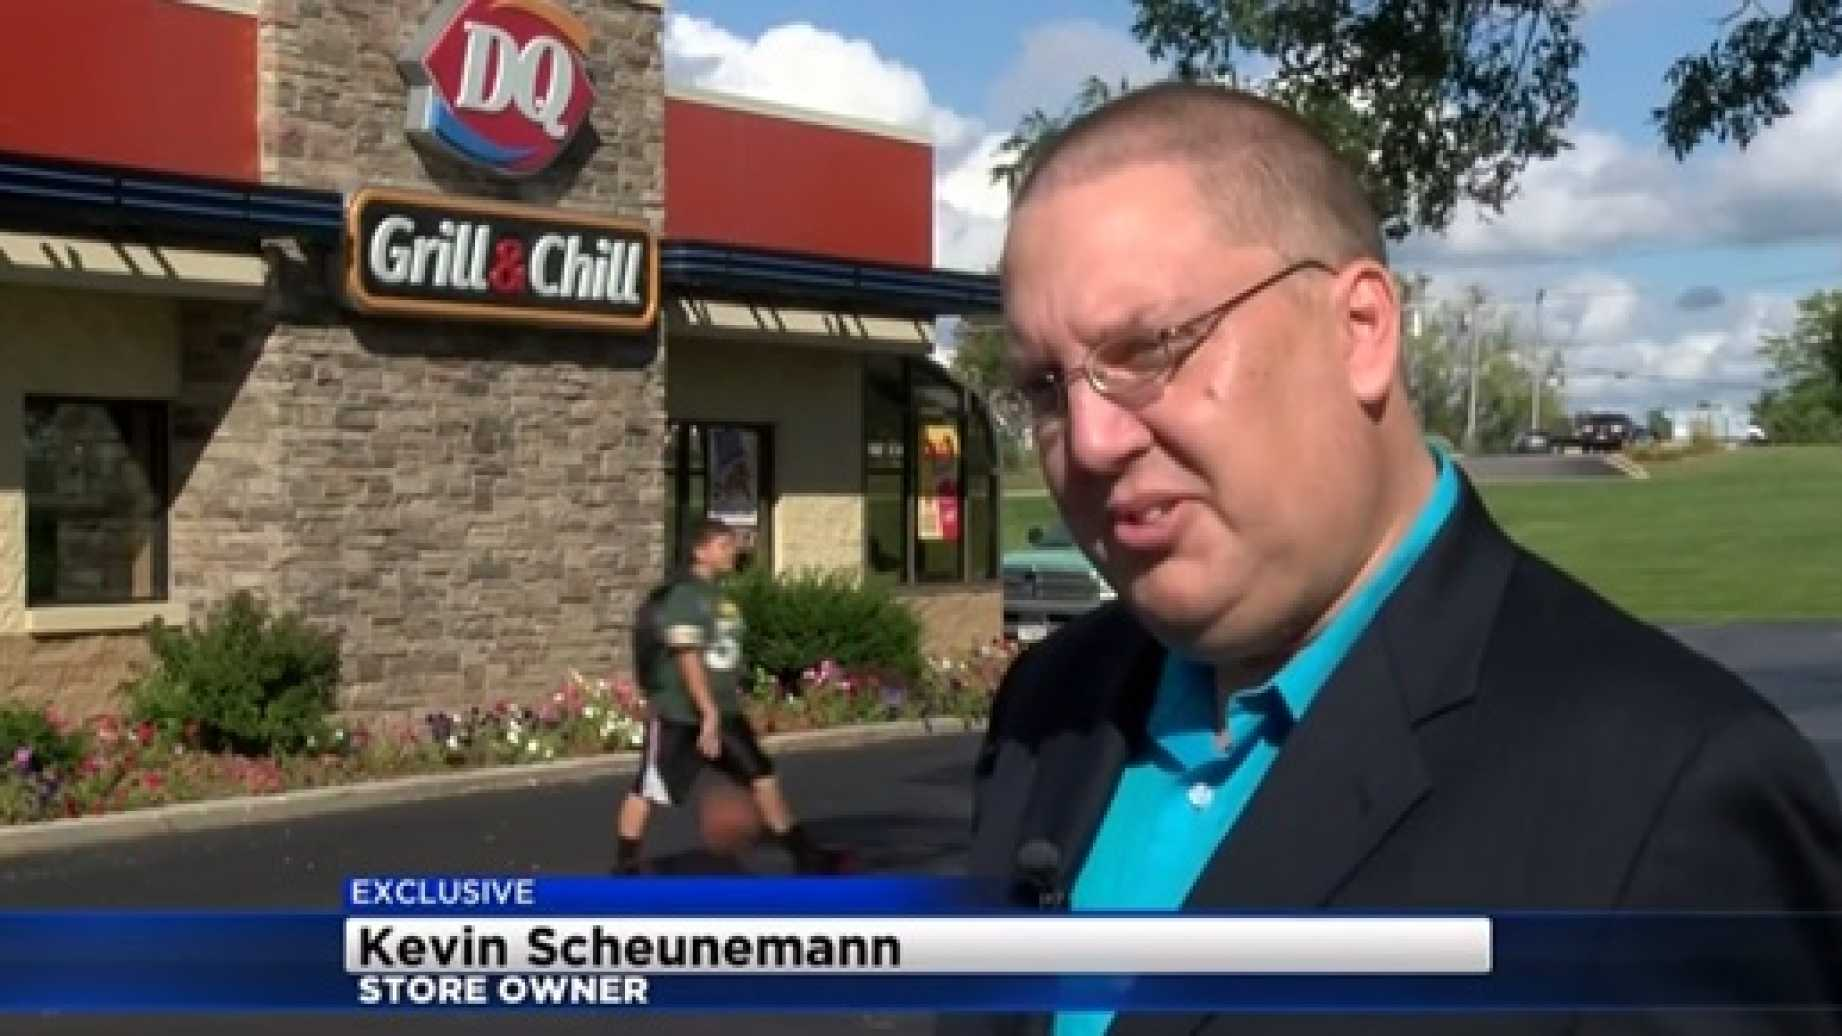 Dairy Queen Owner Hangs Very 'Politically Incorrect Sign'